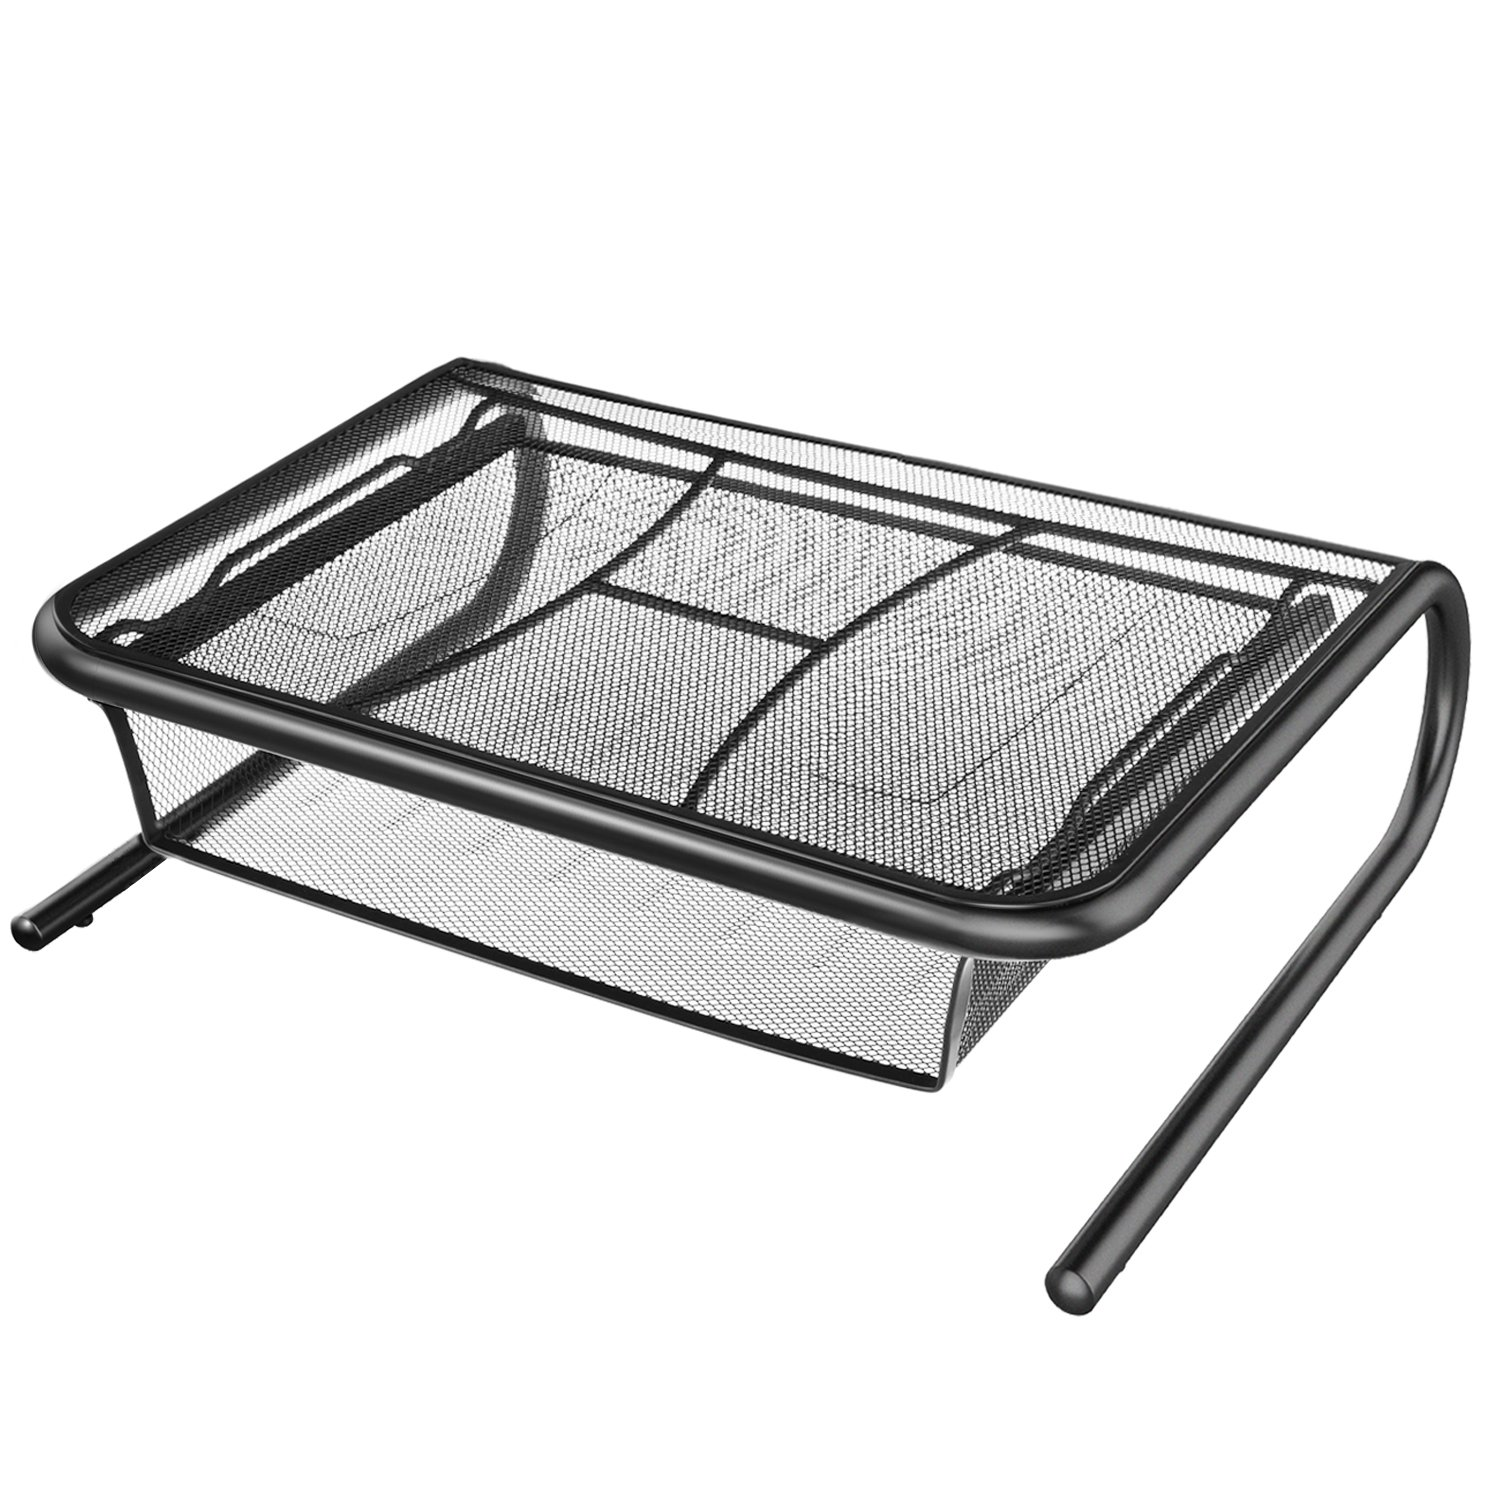 Monitor Stand Riser with Pull Out Storage Drawer - Mesh Metal Printer Holder with Ventilated Surface for Computer, Laptop, Printers - Keeps Your Devices Cool & Prevents Overheating - Premium Computer by HUANUO (Image #1)